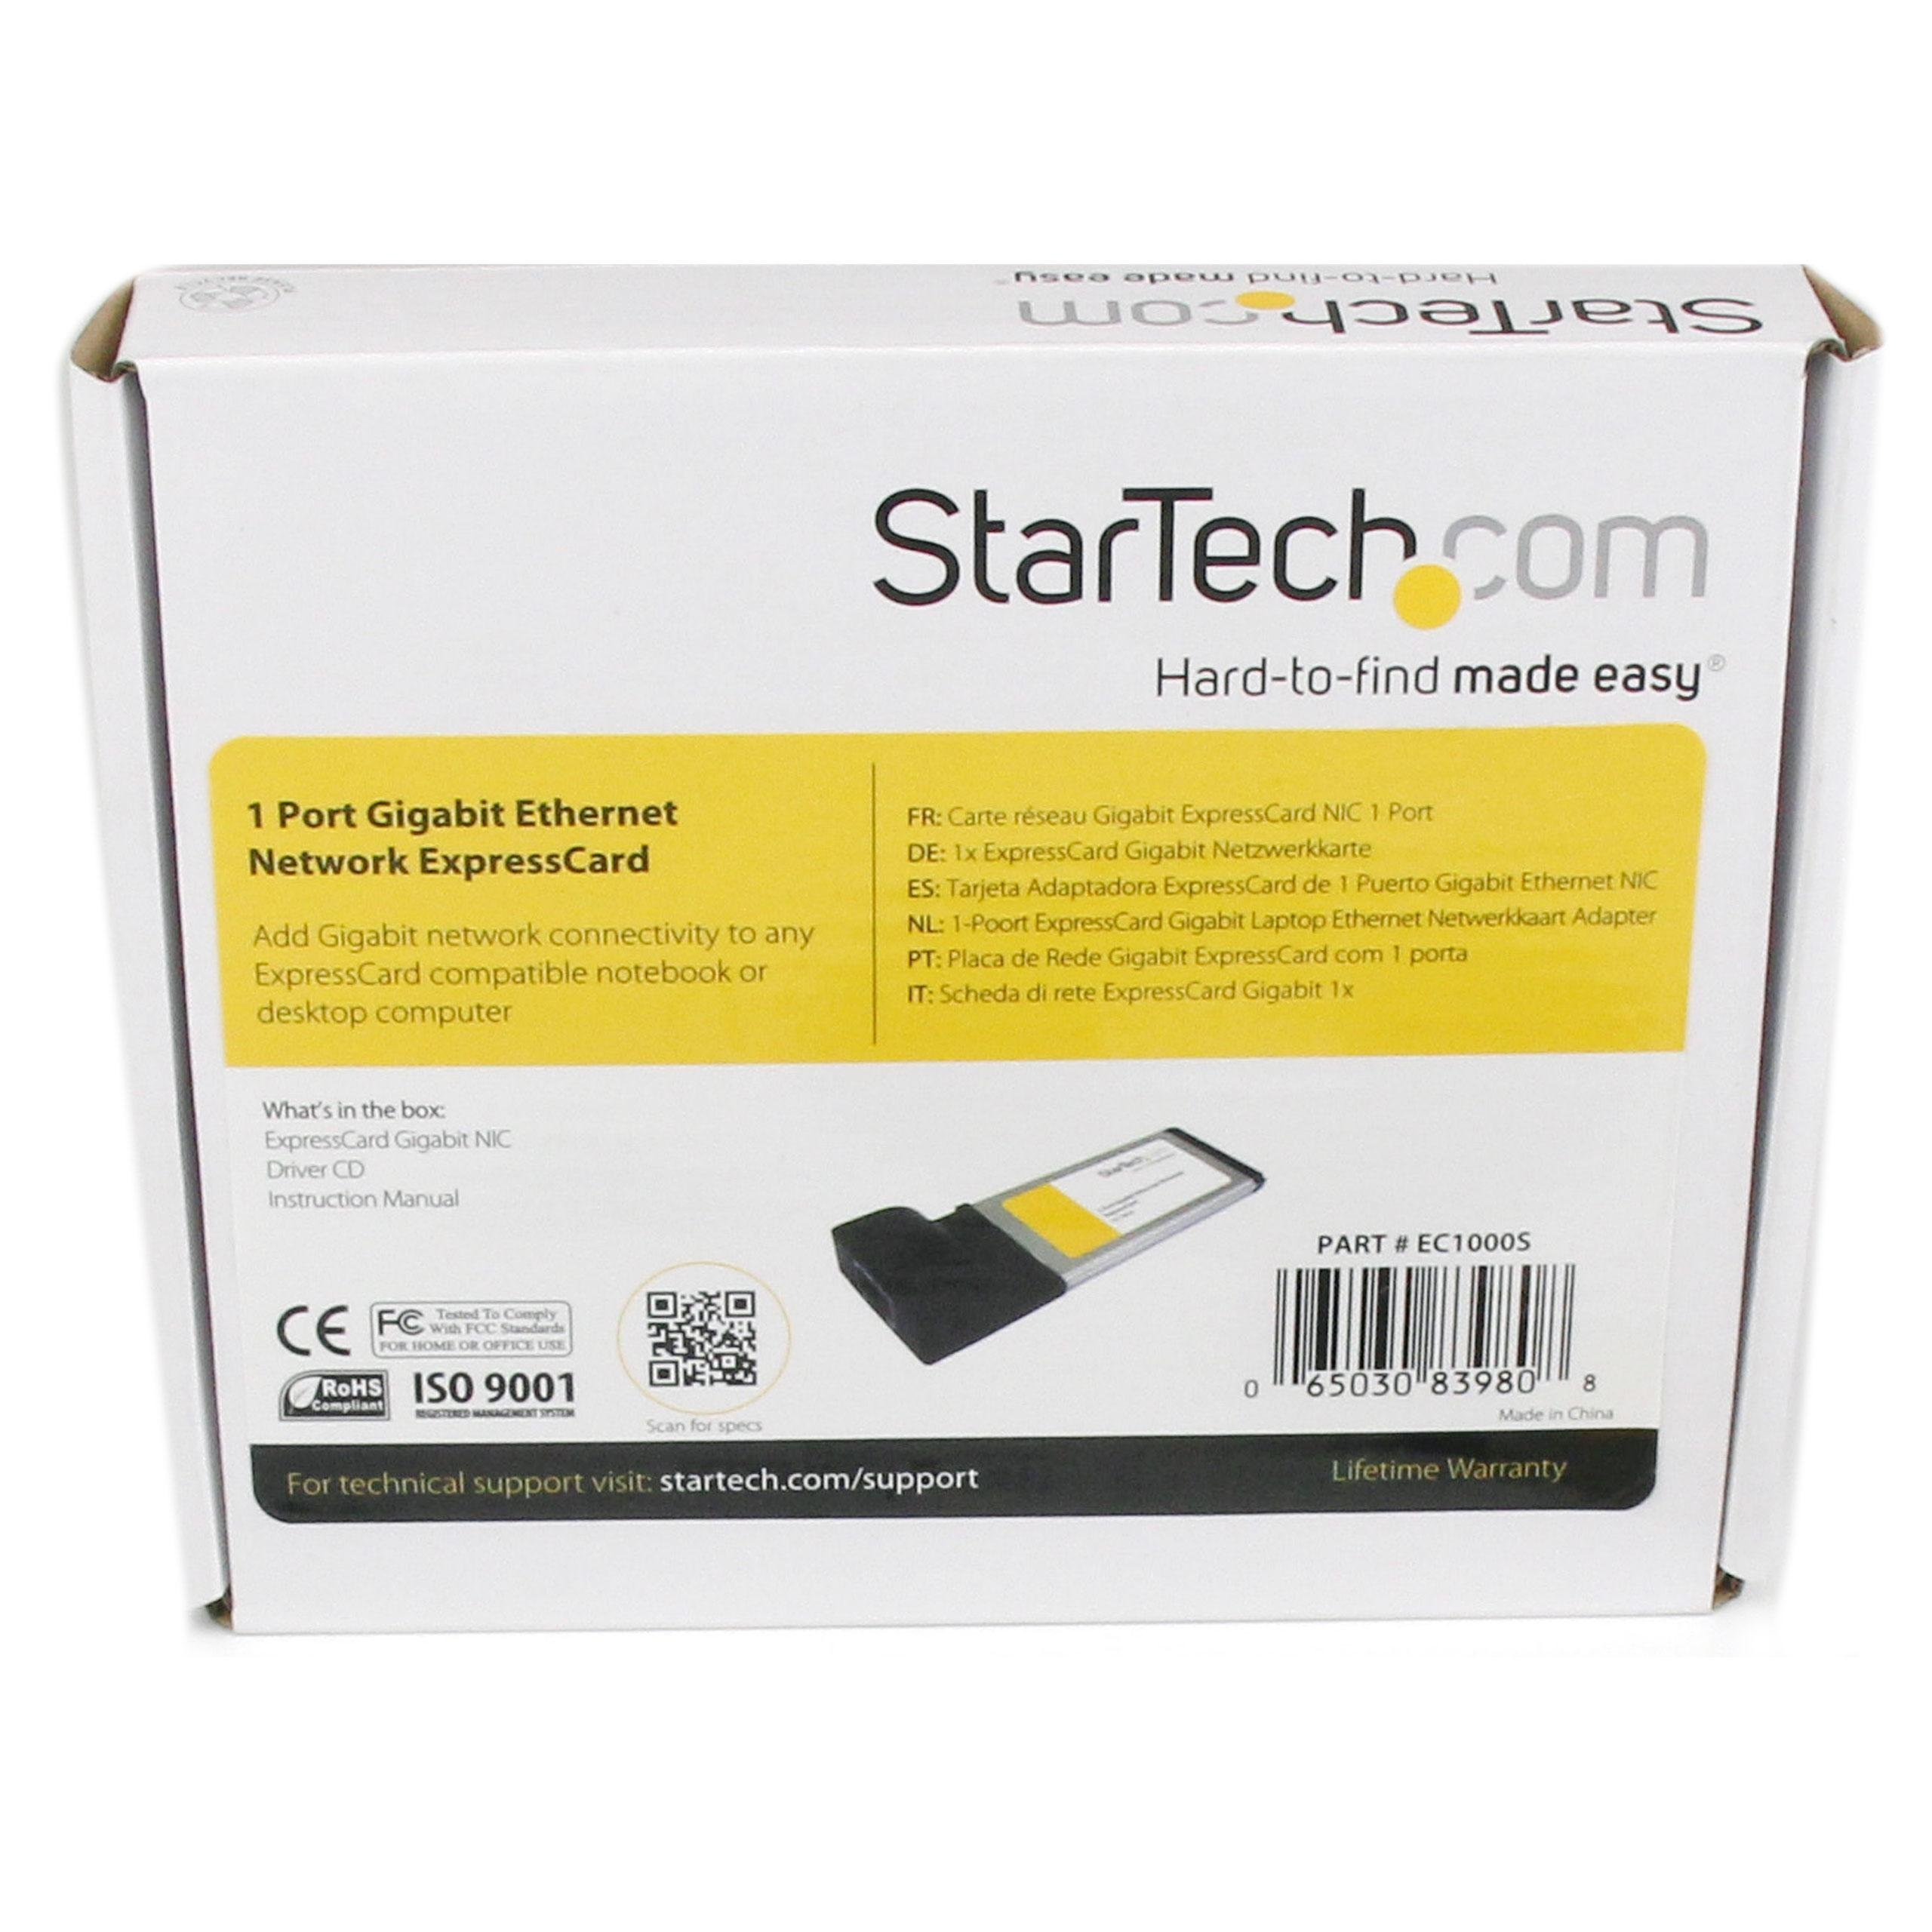 StarTech com 1 Port ExpressCard Gigabit Ethernet NIC Network Adapter Card